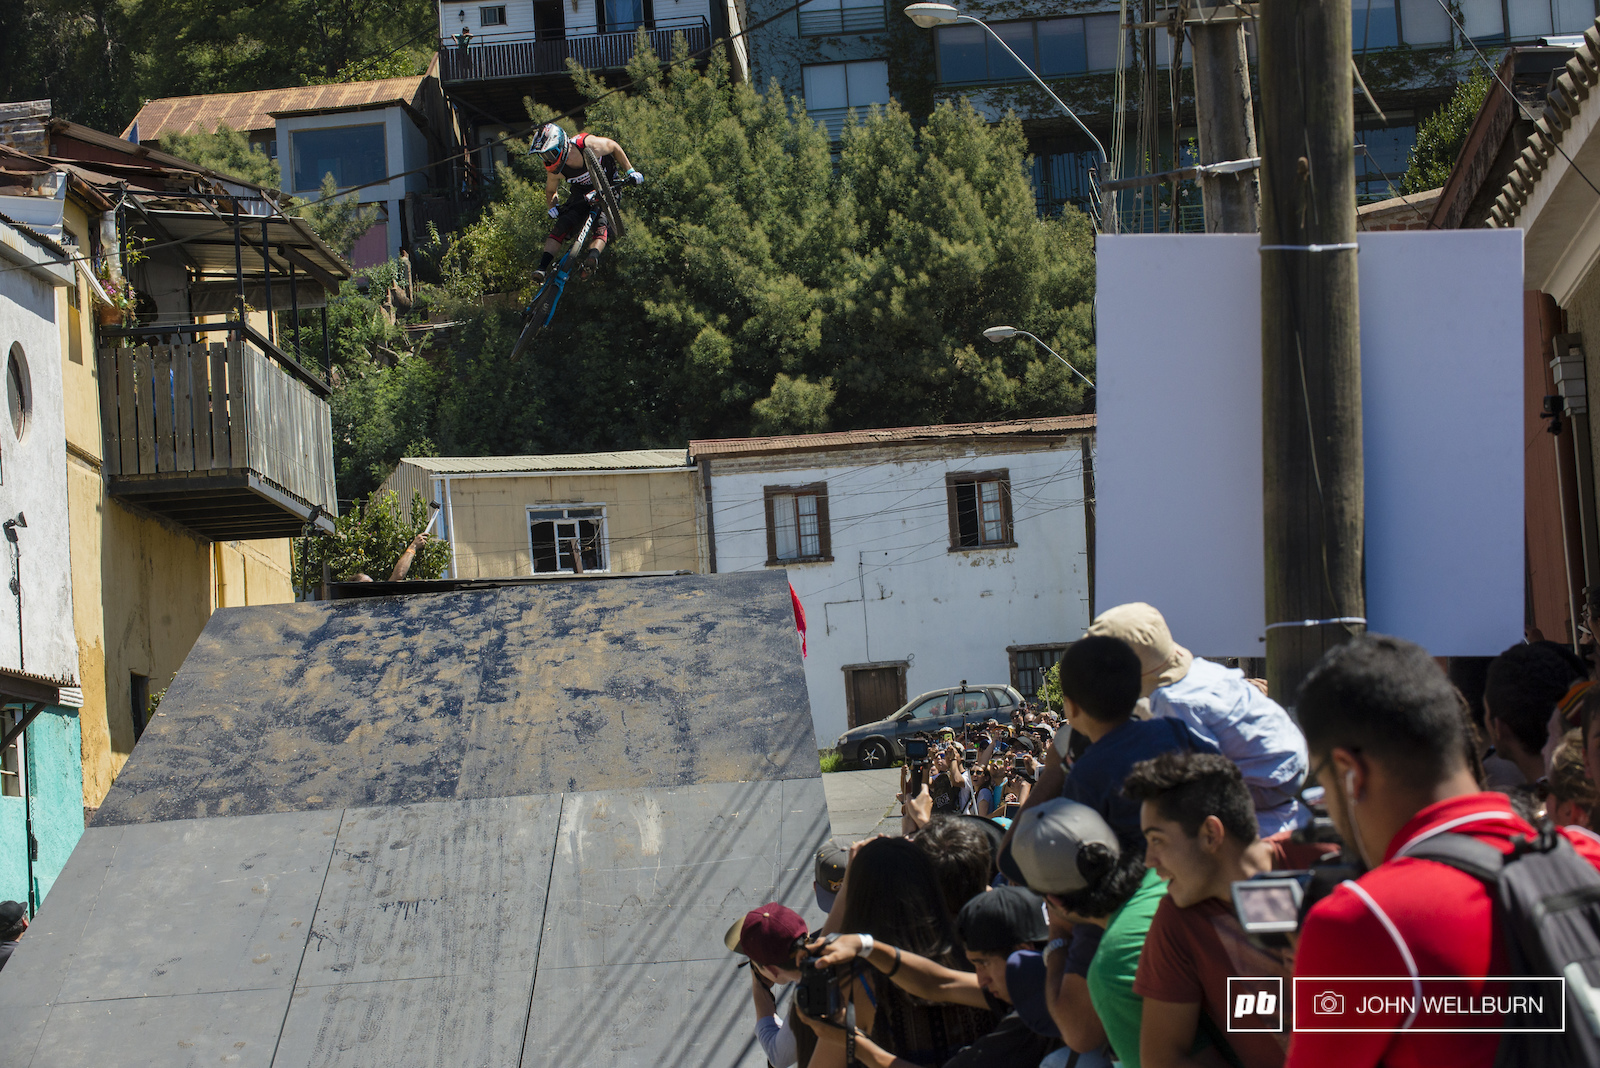 Chilean rider Ignacio Rojo is the only competitor that has competed in every single one of the 15 Cerro Abajo Urban DH races in Valparaiso. Here he gets full moto over the 40 foot bus gap.